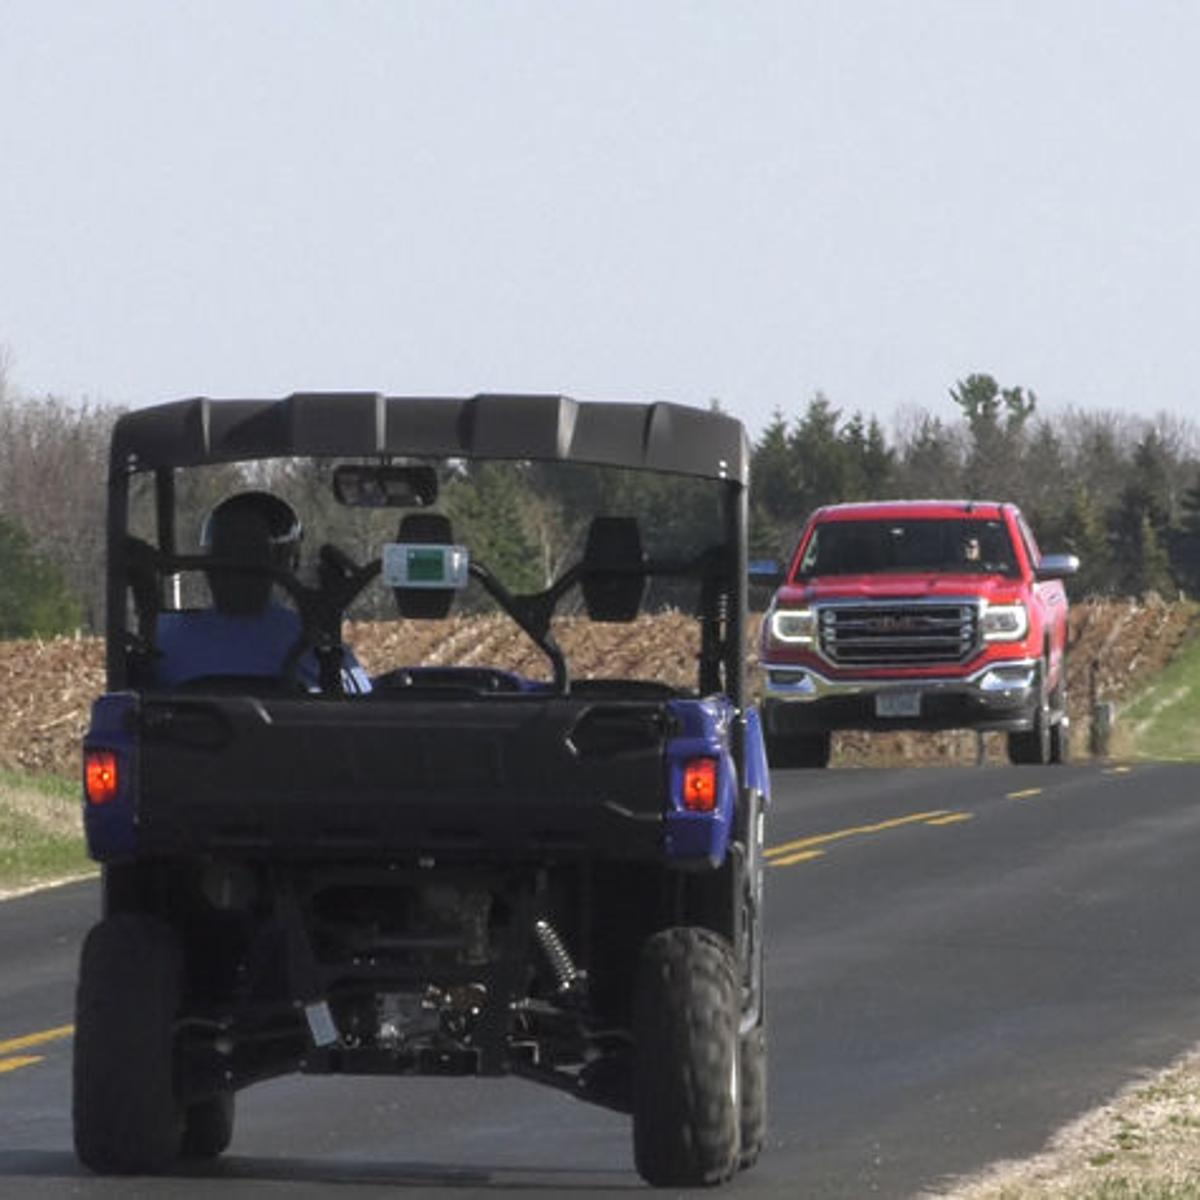 Off-road vehicles could be on road, thanks to change in